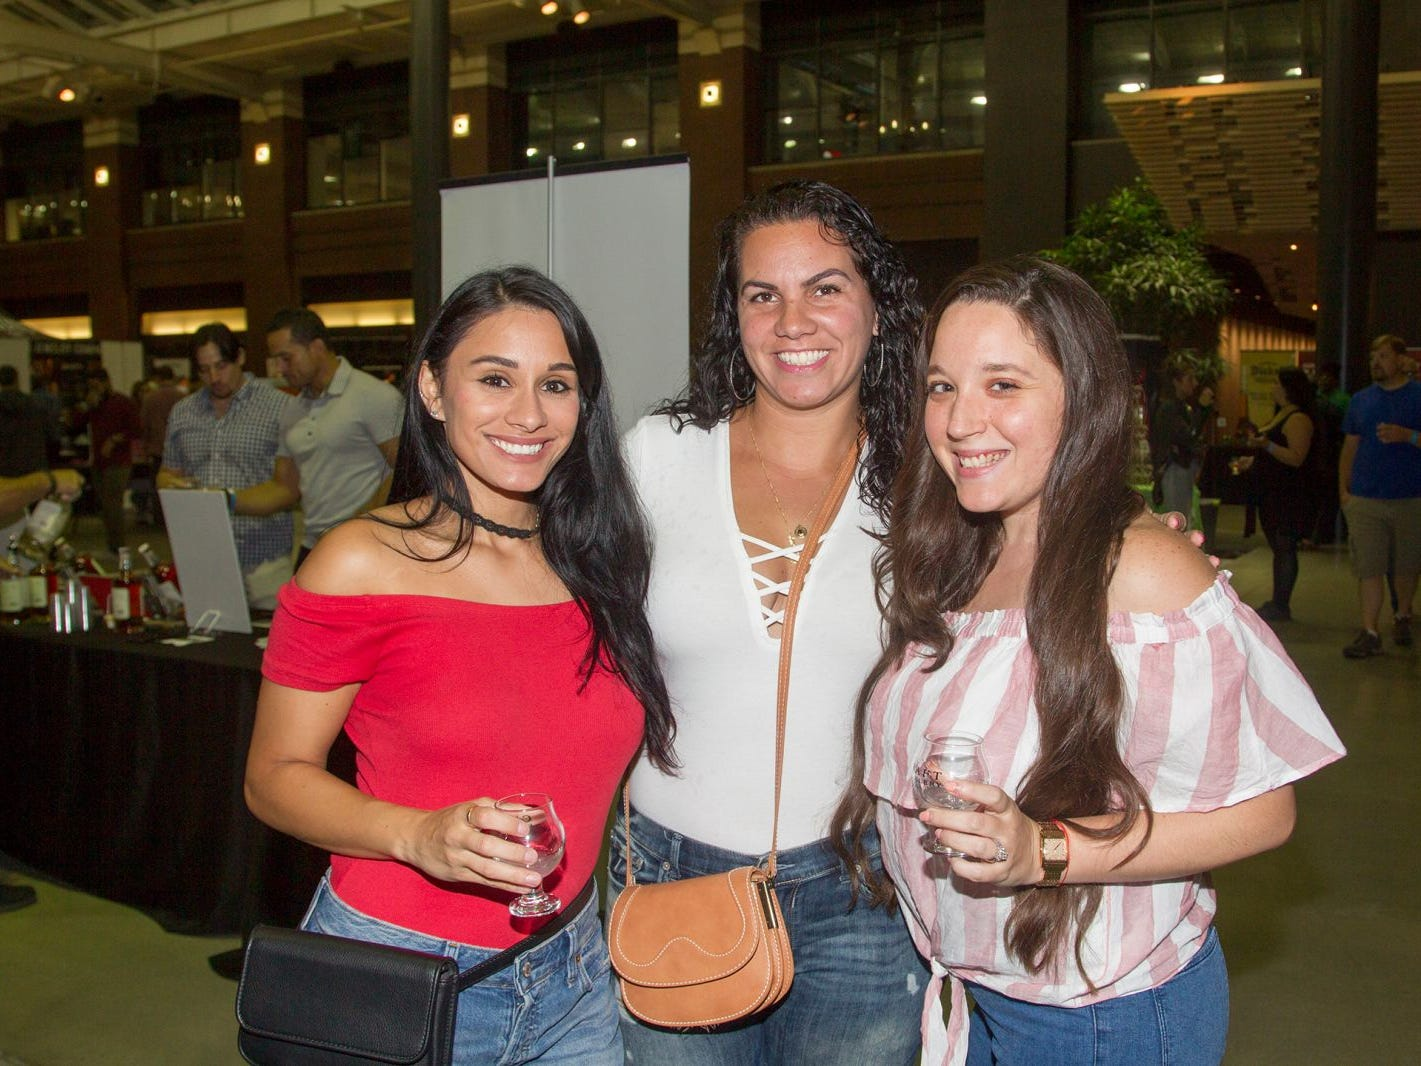 Carli, Nikki, Fran. Jersey City Craft Distillery Fest at the Harborside Atrium featured more than 100 styles of spirits. Guests had the chance to taste craft-distilled spirits from moonshine, rum, cognac, whiskey, vodka, gin, tequila and more. 09/08/2018